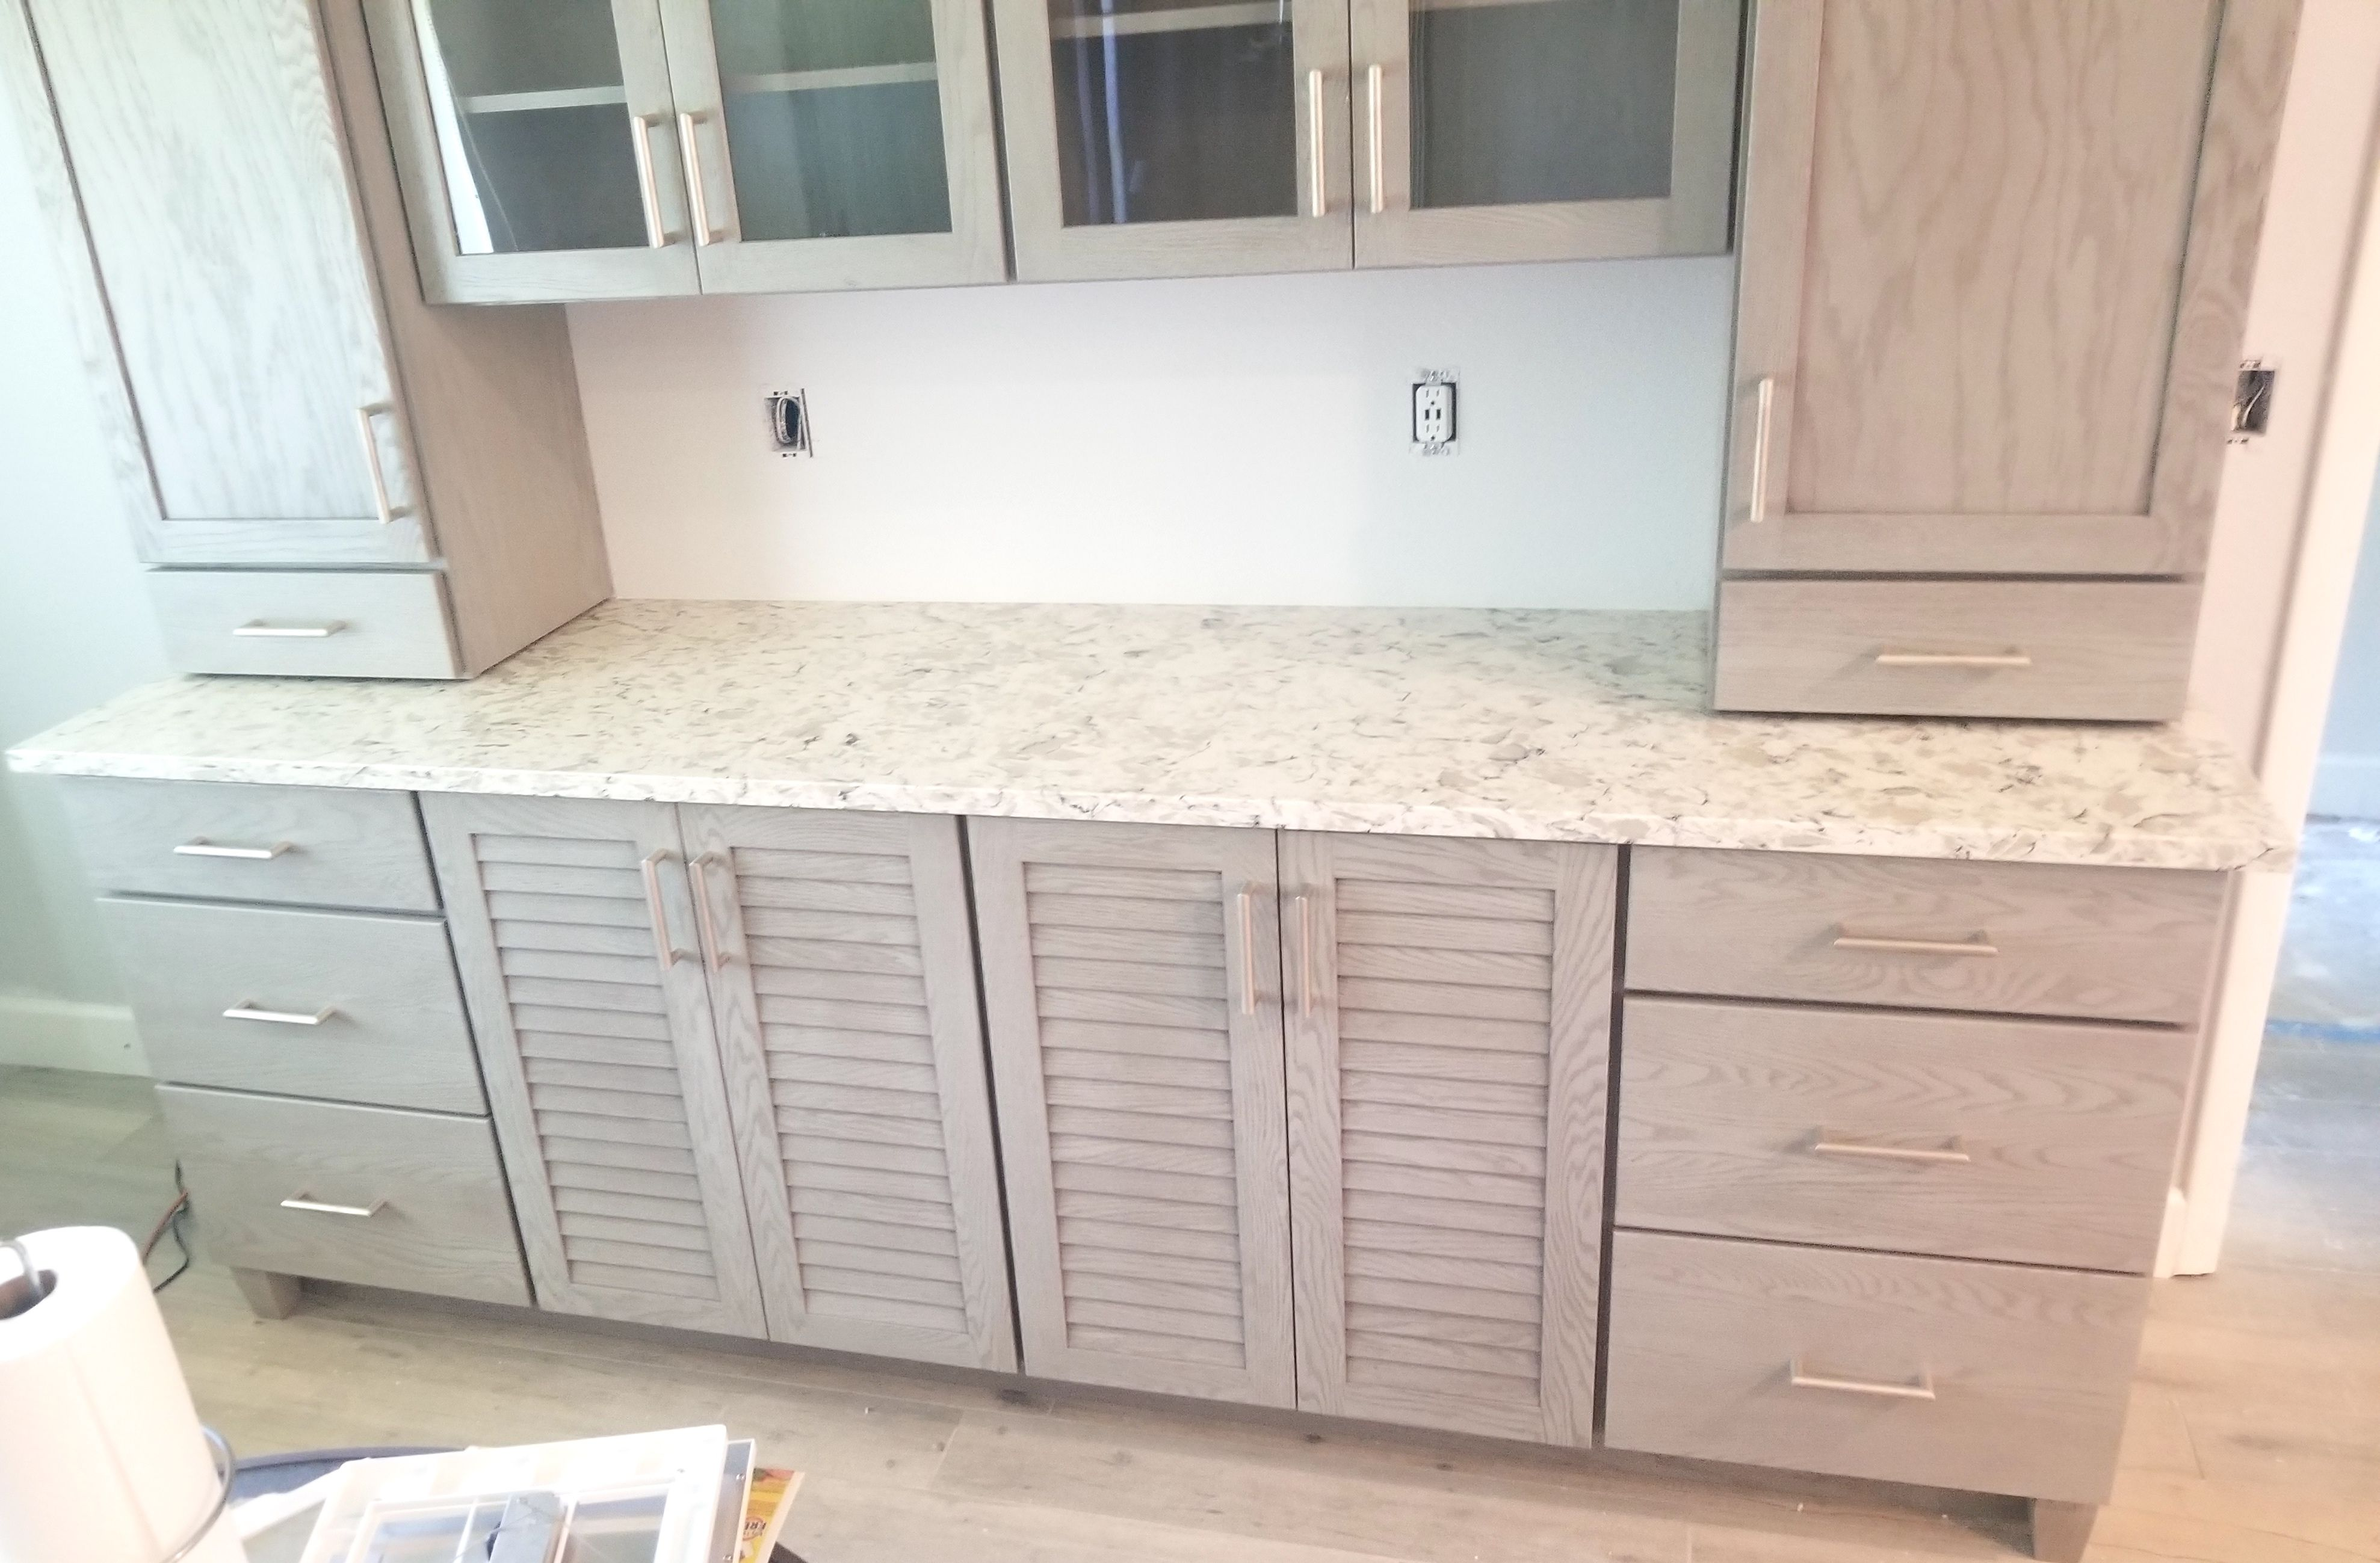 Magnificent Selinas Phoenix Quartz Used For Countertop With Polished Light Beige Cabinets Giving It A Nice Sleek Look Beige Cabinets Countertops Light Beige